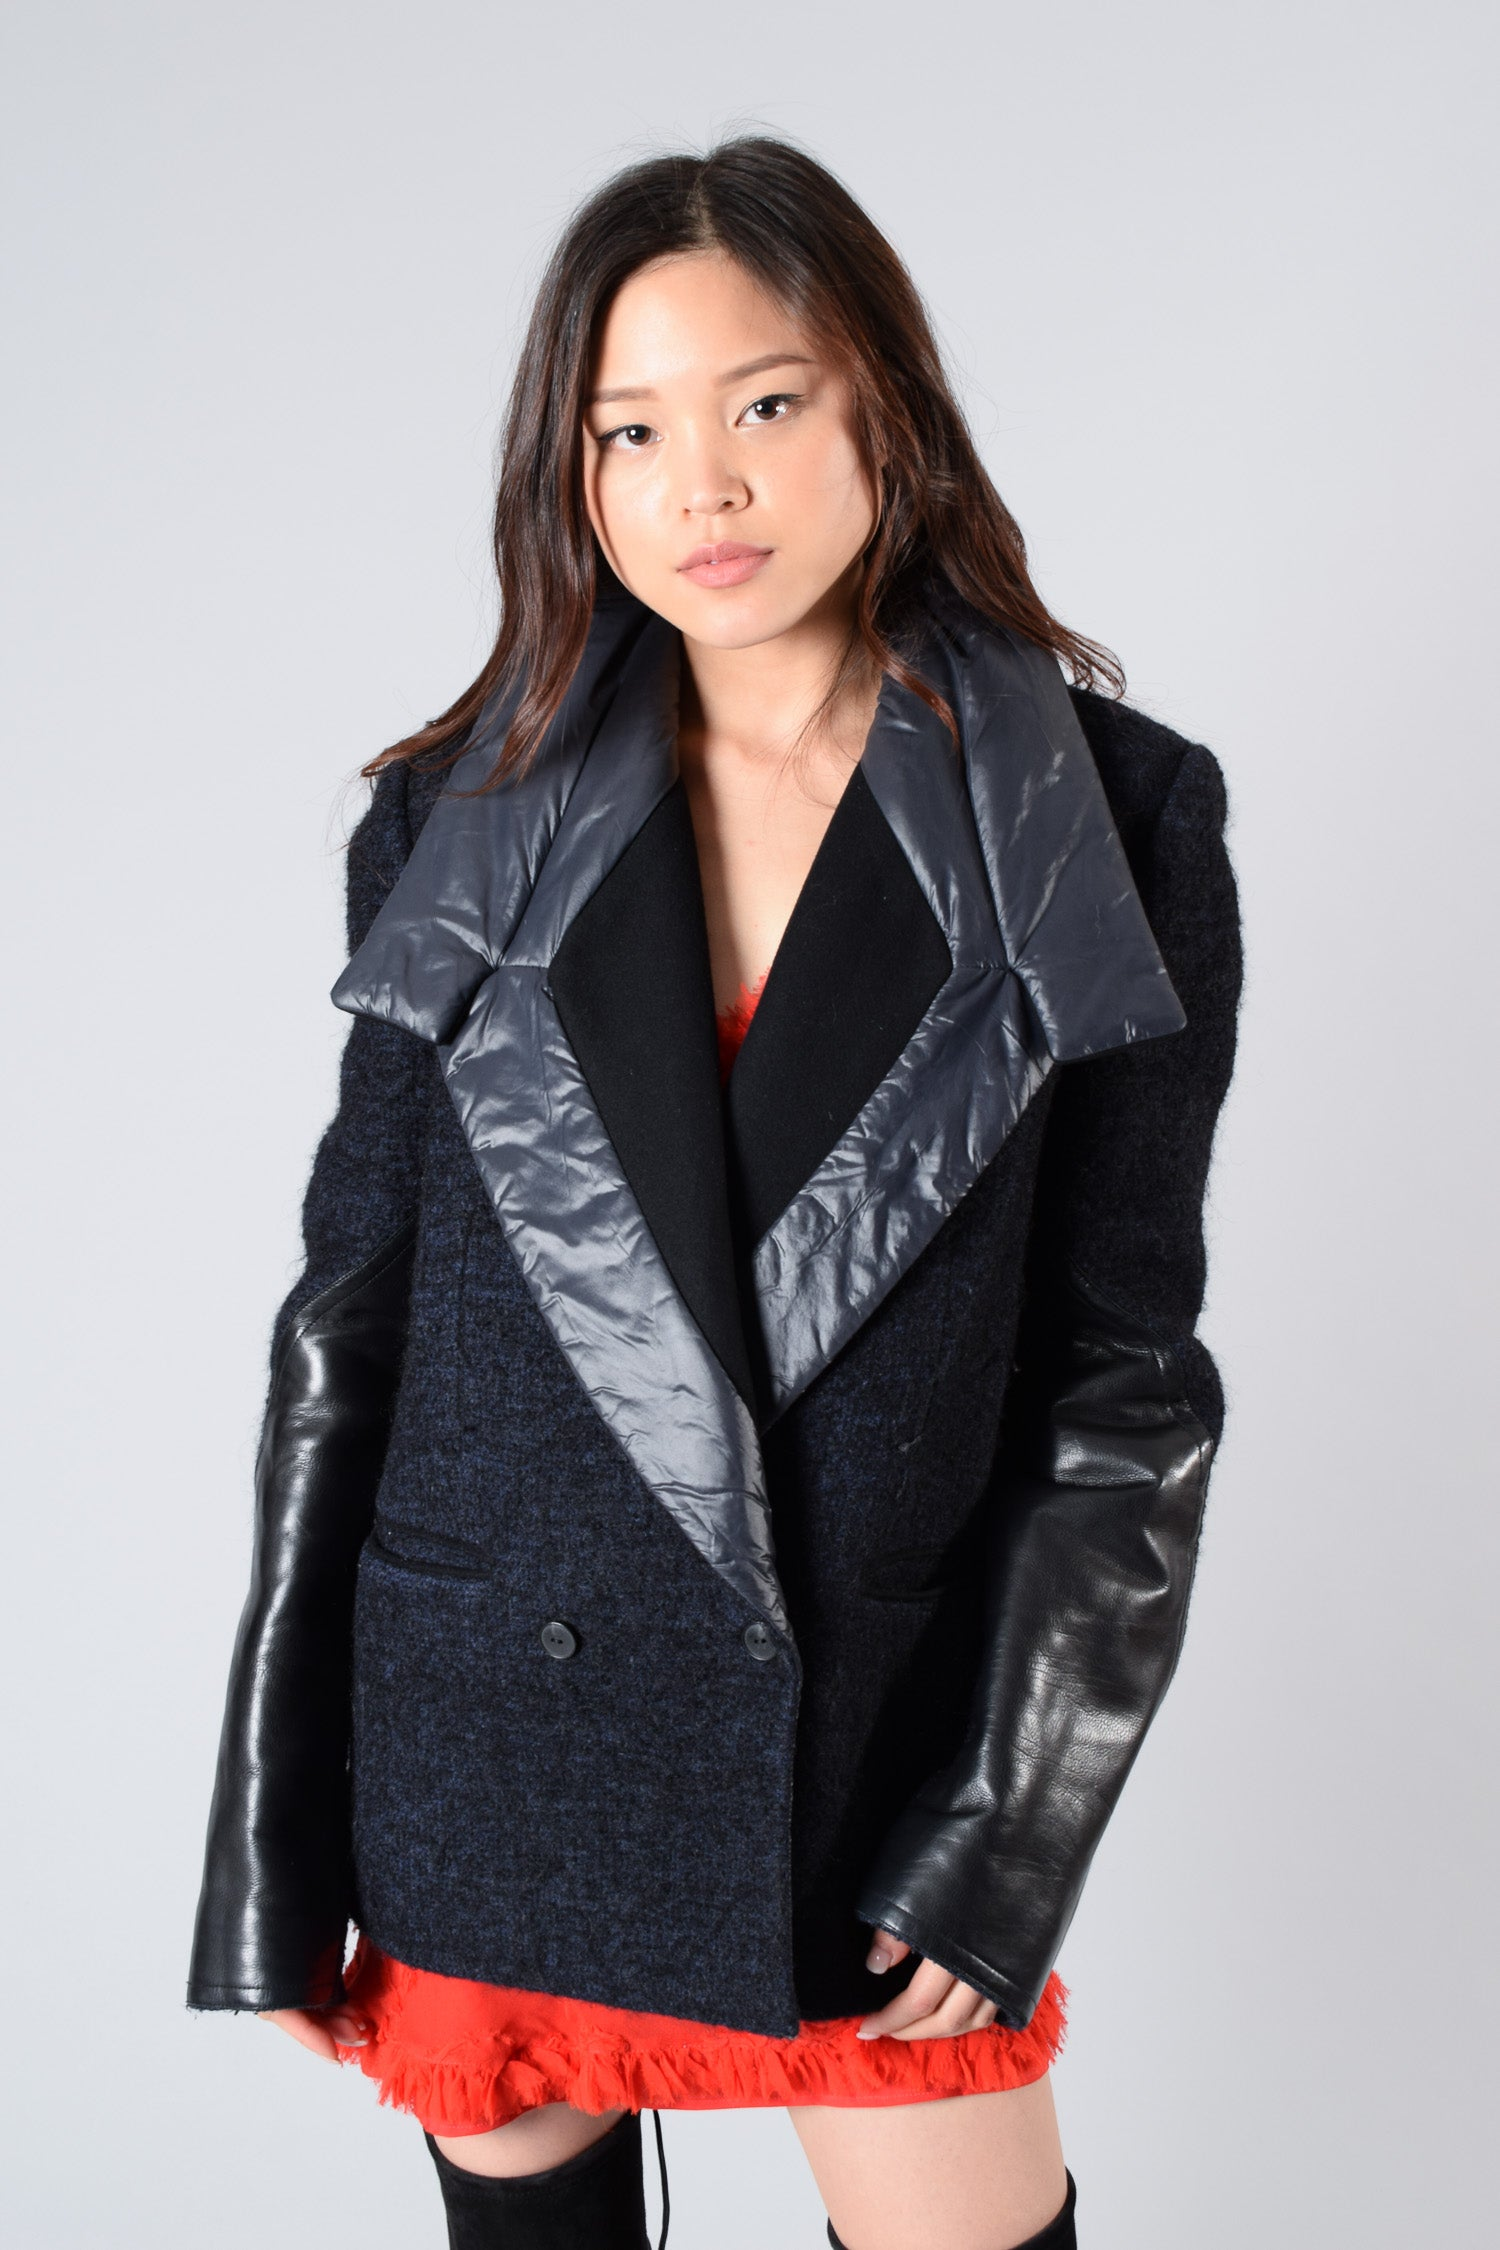 Alexander Wang Wool/Leather Coat Size M